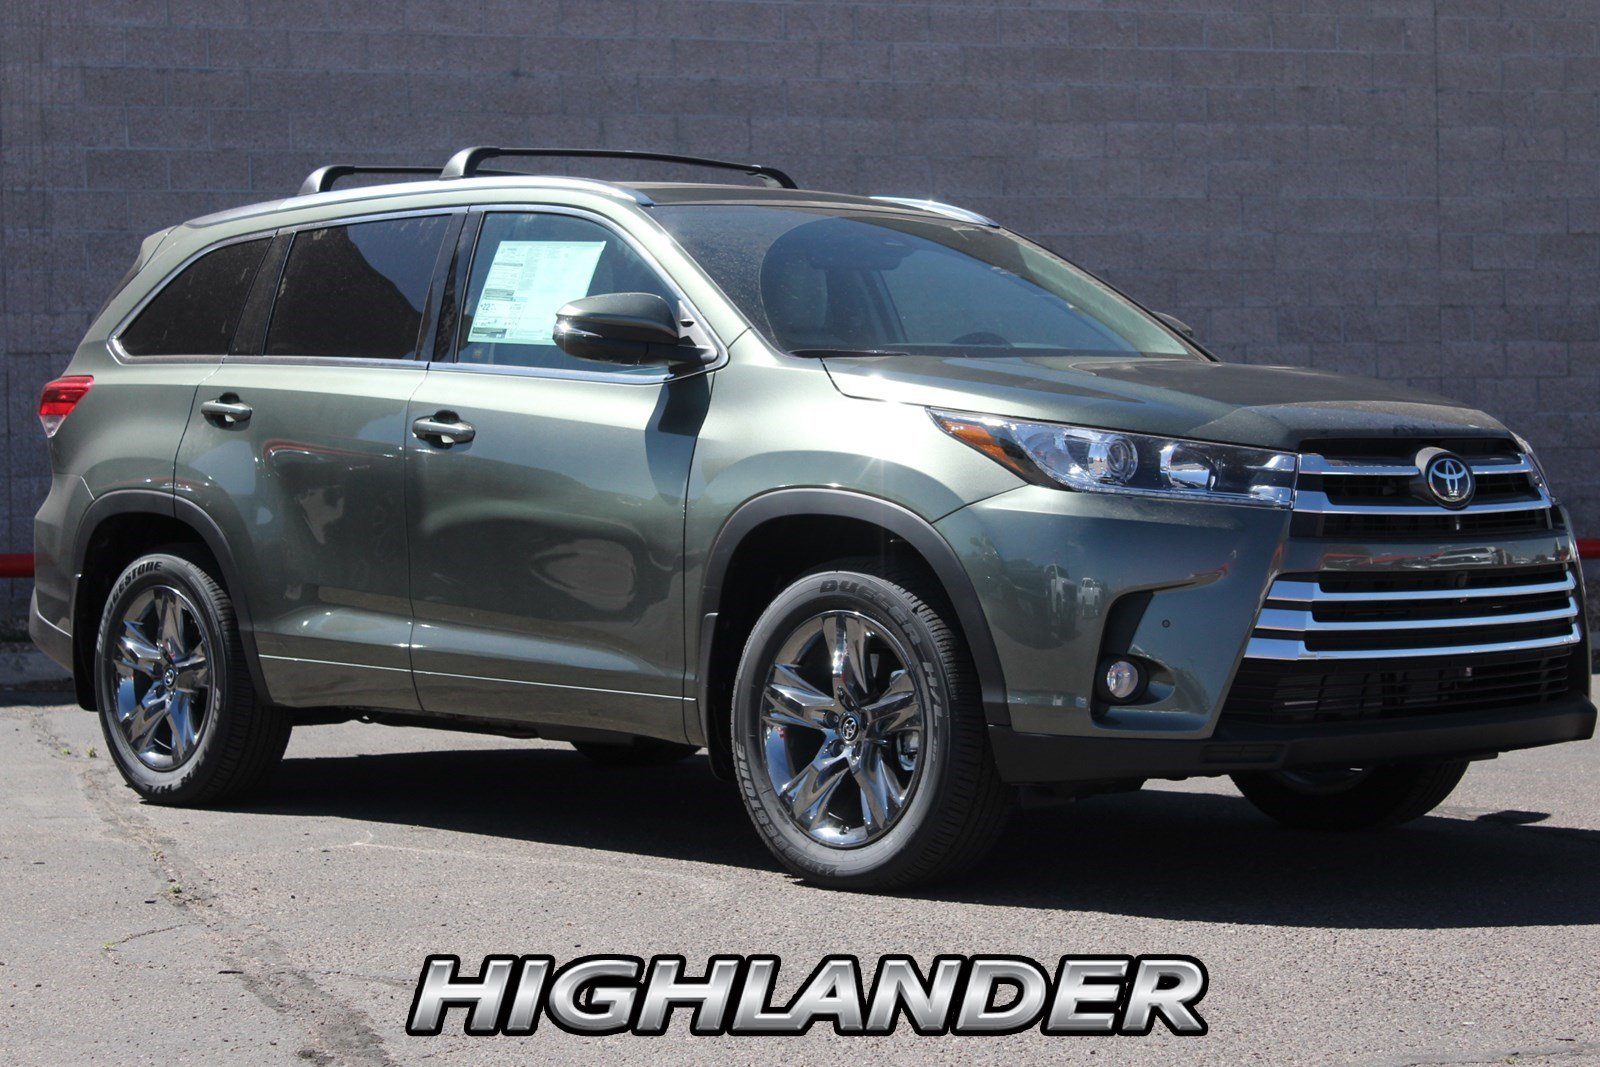 Toyota Highlander Service Manual: Rear brake